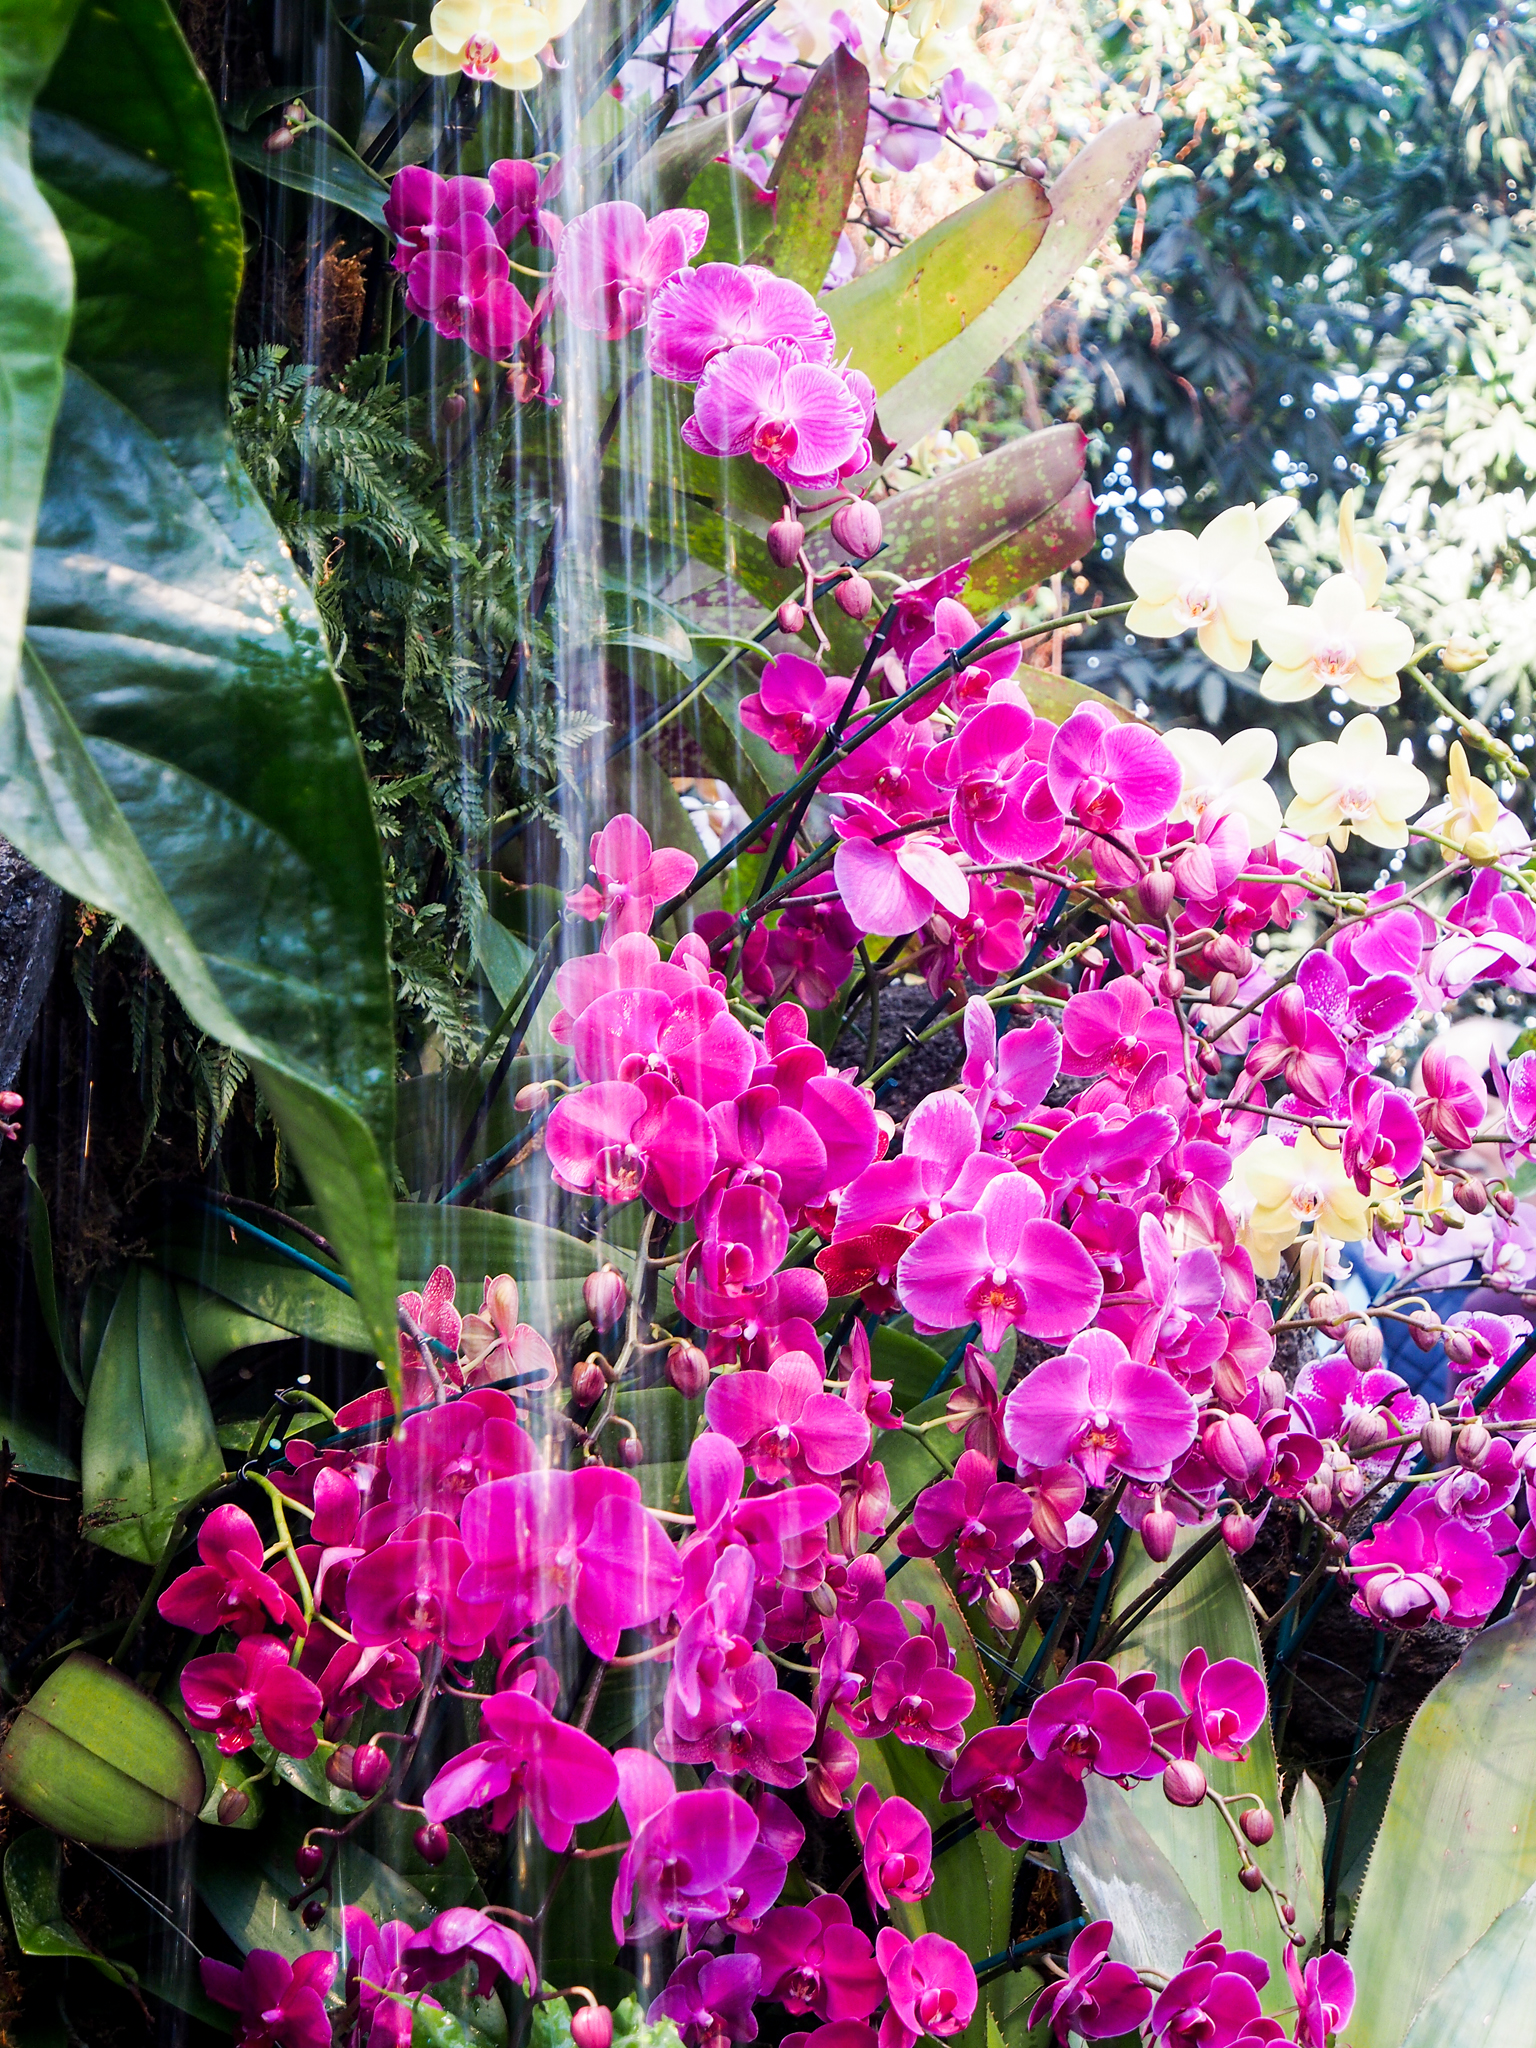 A rich palette of orchids in myriad shapes drizzling from the cascading waterfall.